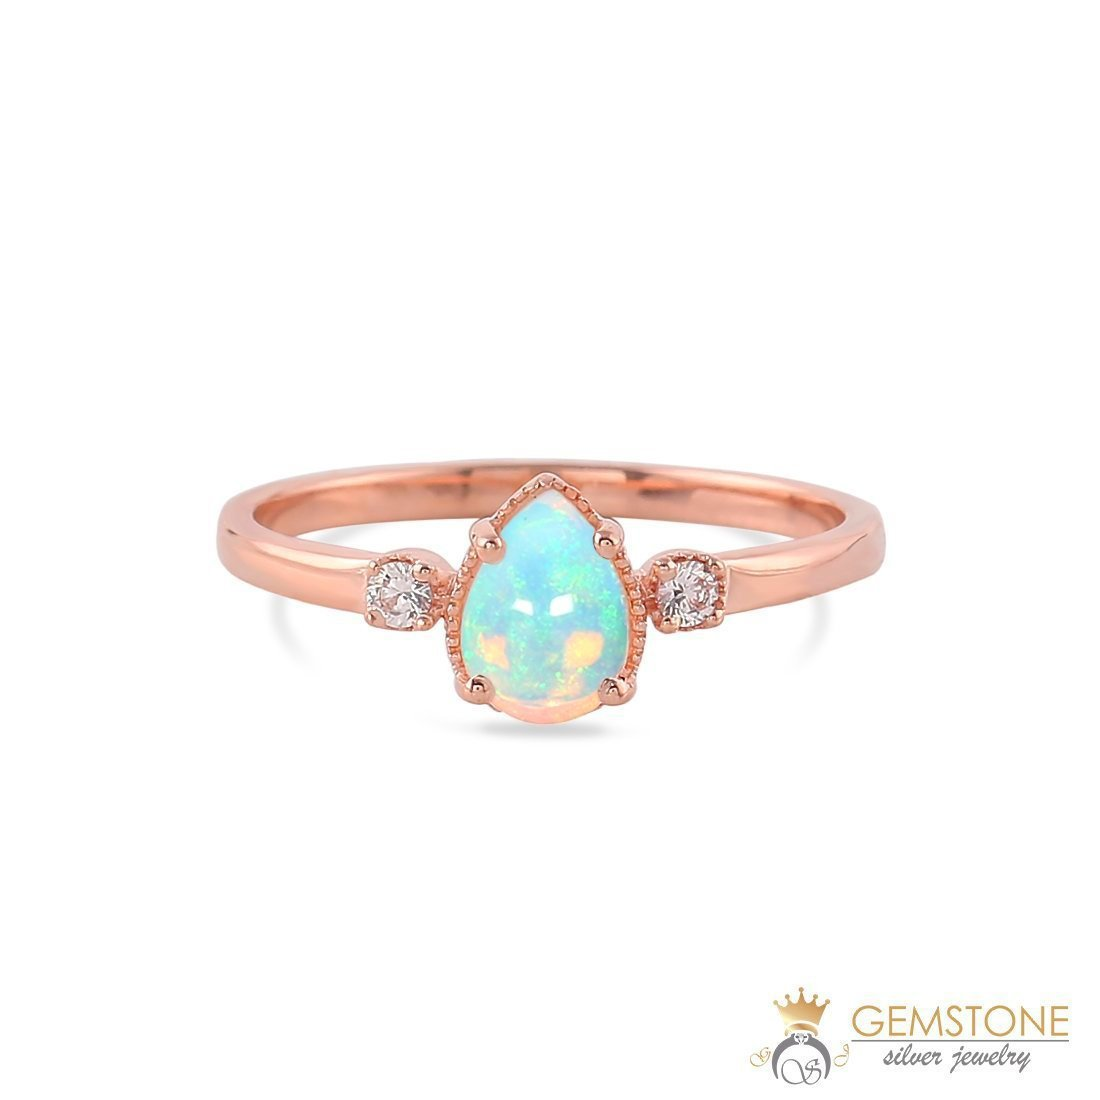 jewels opal rings opal rings wedding opal rings in rose gold opal rings with rose gold opal rings rose gold opal engagement rings rose gold opal rings gold opal rings real opal rings in sterling silver opal rings from australia opal rings antique opal rings for sale opal rings on sale opal nose rings opal rings cheap opal rings simple opal rings in yellow gold opal rings yellow gold opal rings price opal rings size 5 opal rings size 11 opal jewelry opal jewelry sets opal ring 14k gold opal ring yellow gold silver opal ring silver opal engagement ring